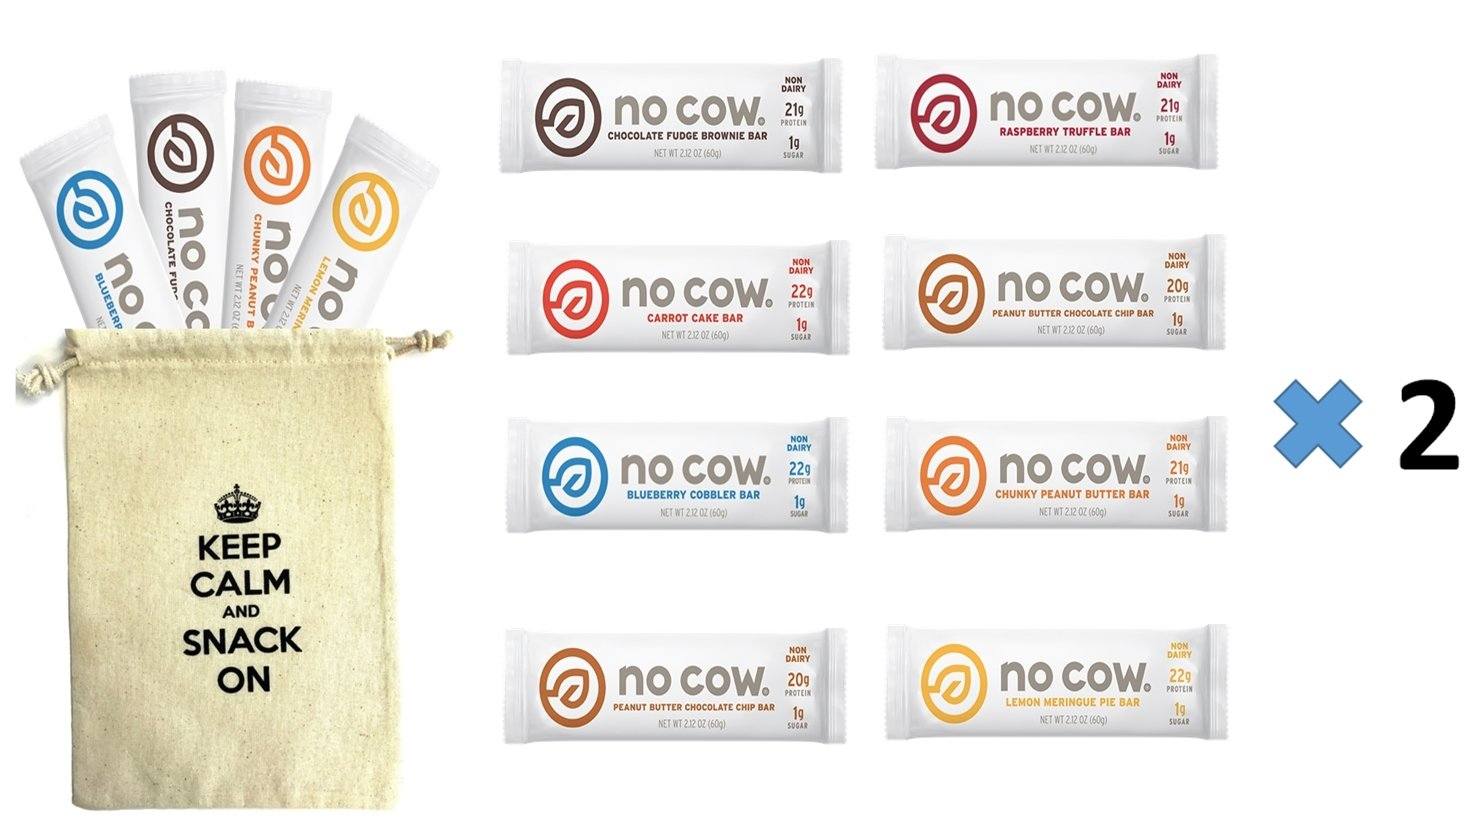 No Cow Variety Pack - 7 Flavors (24 Pack) by No Cow